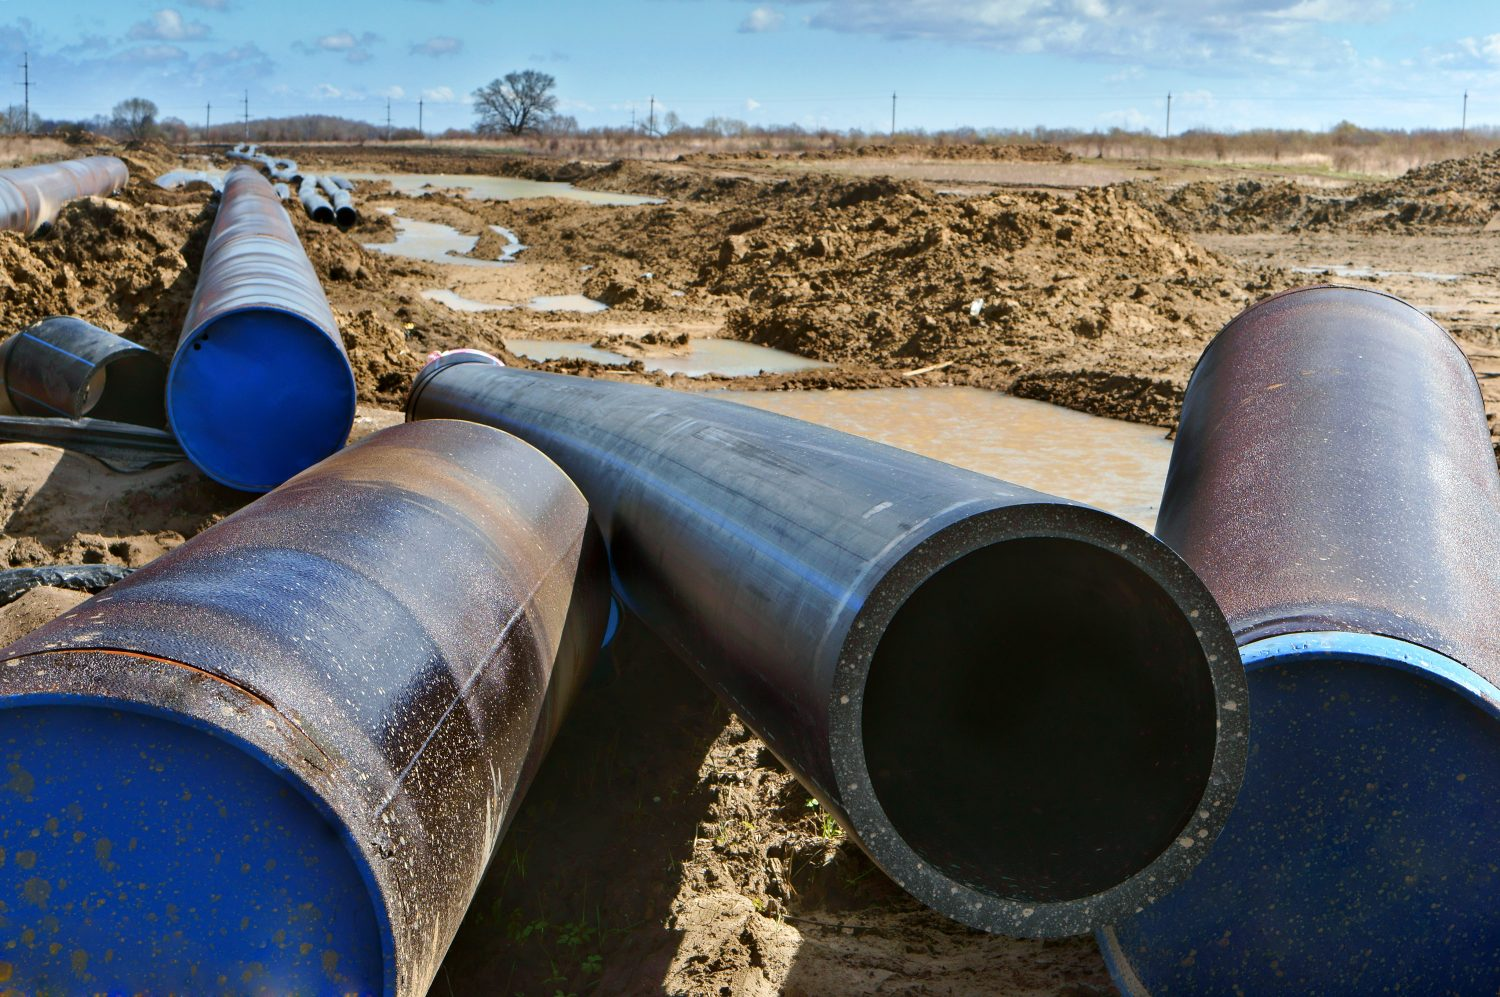 Pipe, Gas, Industry, Industrial, Pipeline, Energy, Tube, Technology, Fuel, Oil